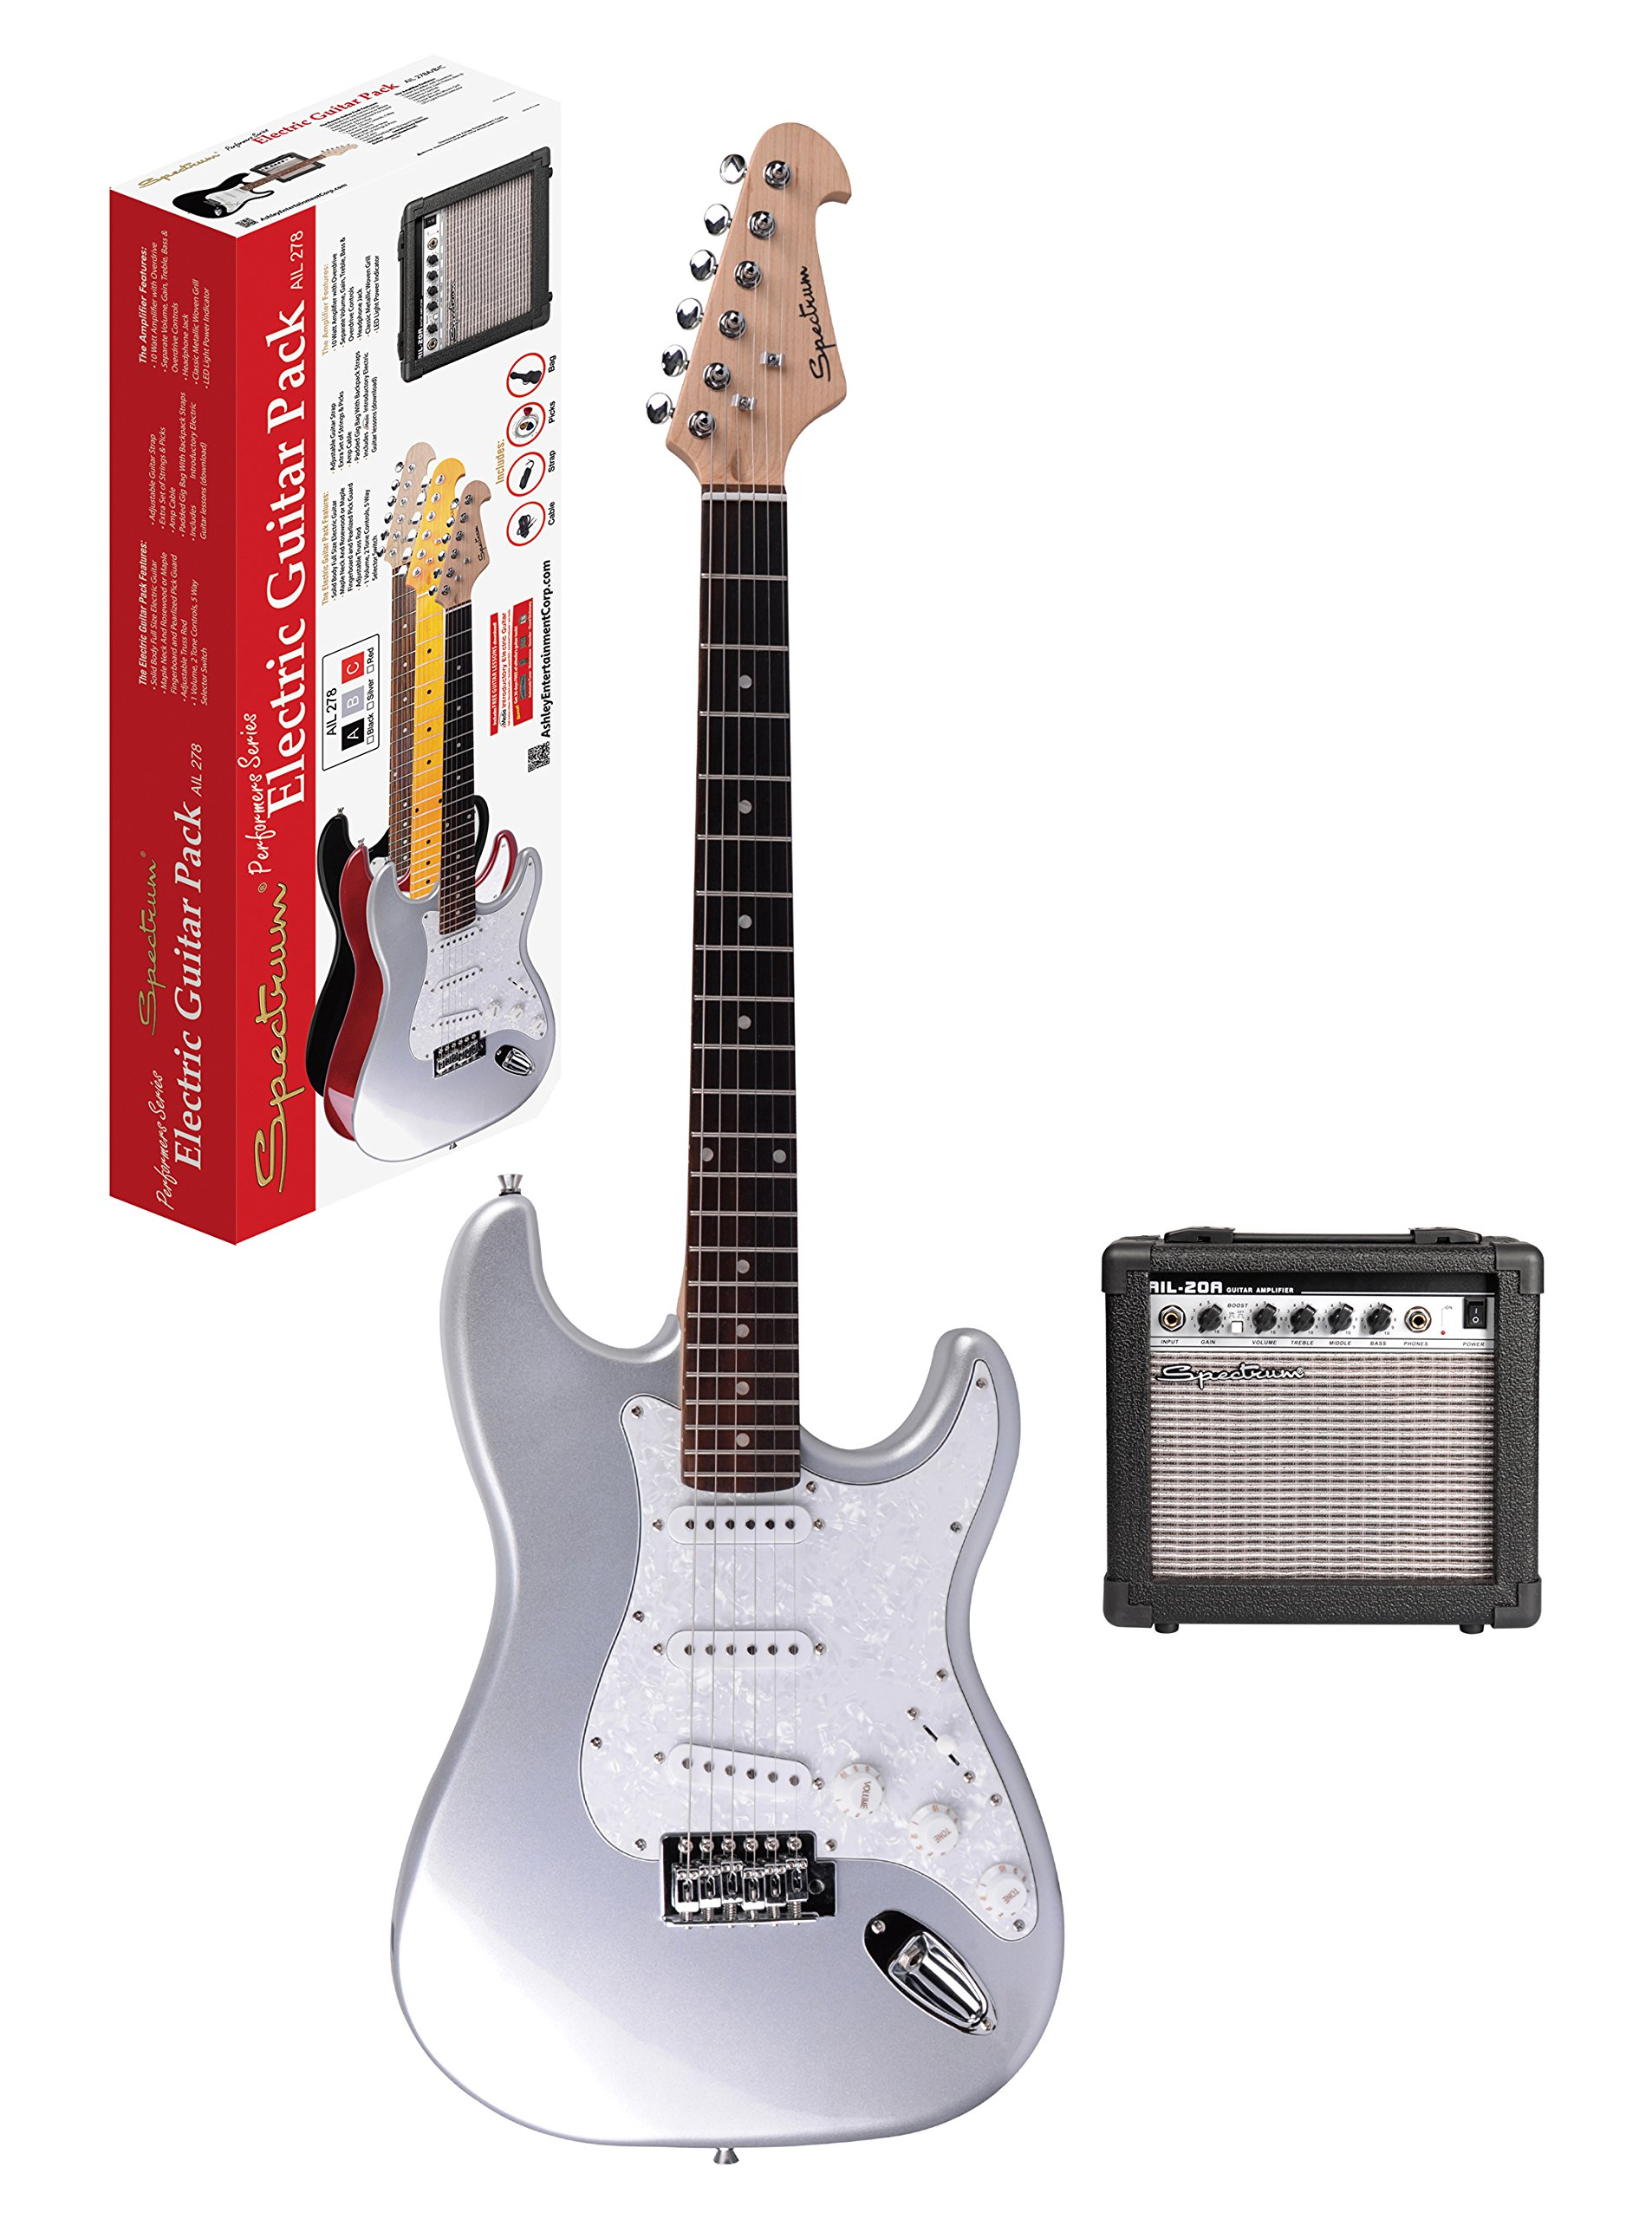 Spectrum AIL 278B Electric Guitar Pack, Silver & White